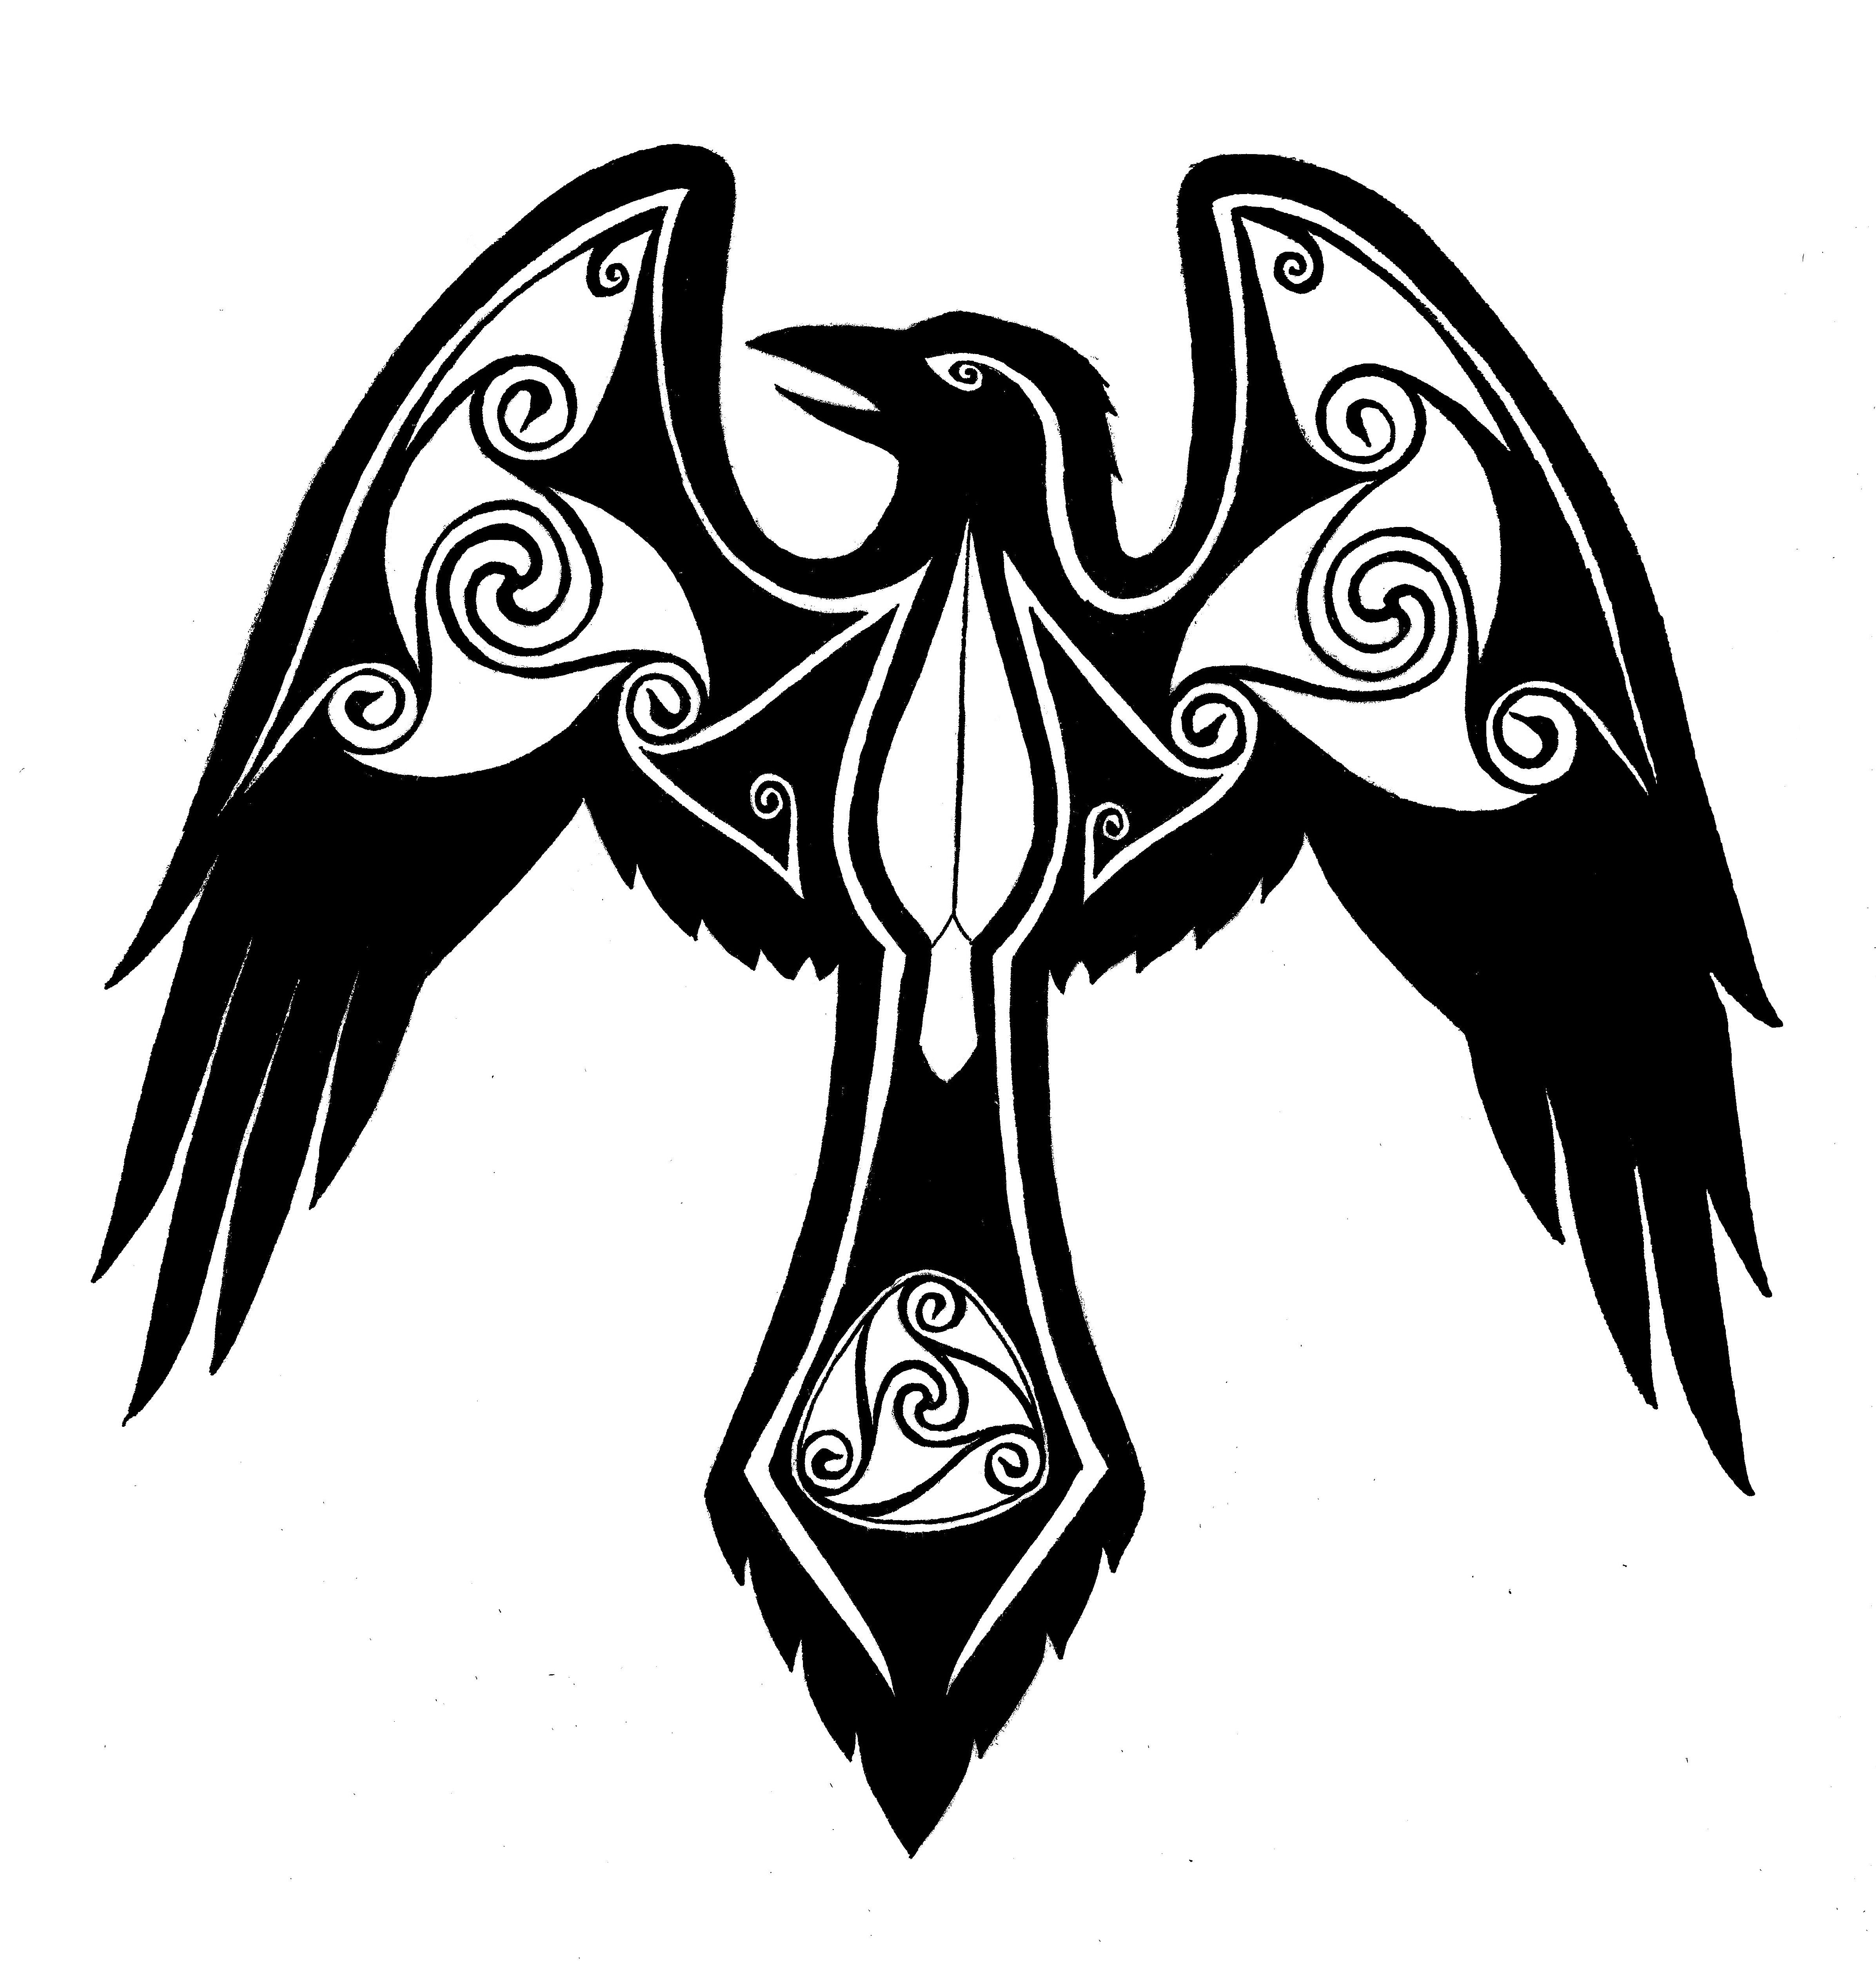 Raven Viking Tattoo: No Matter Nothing, Only Matters What You Belive In ,, This